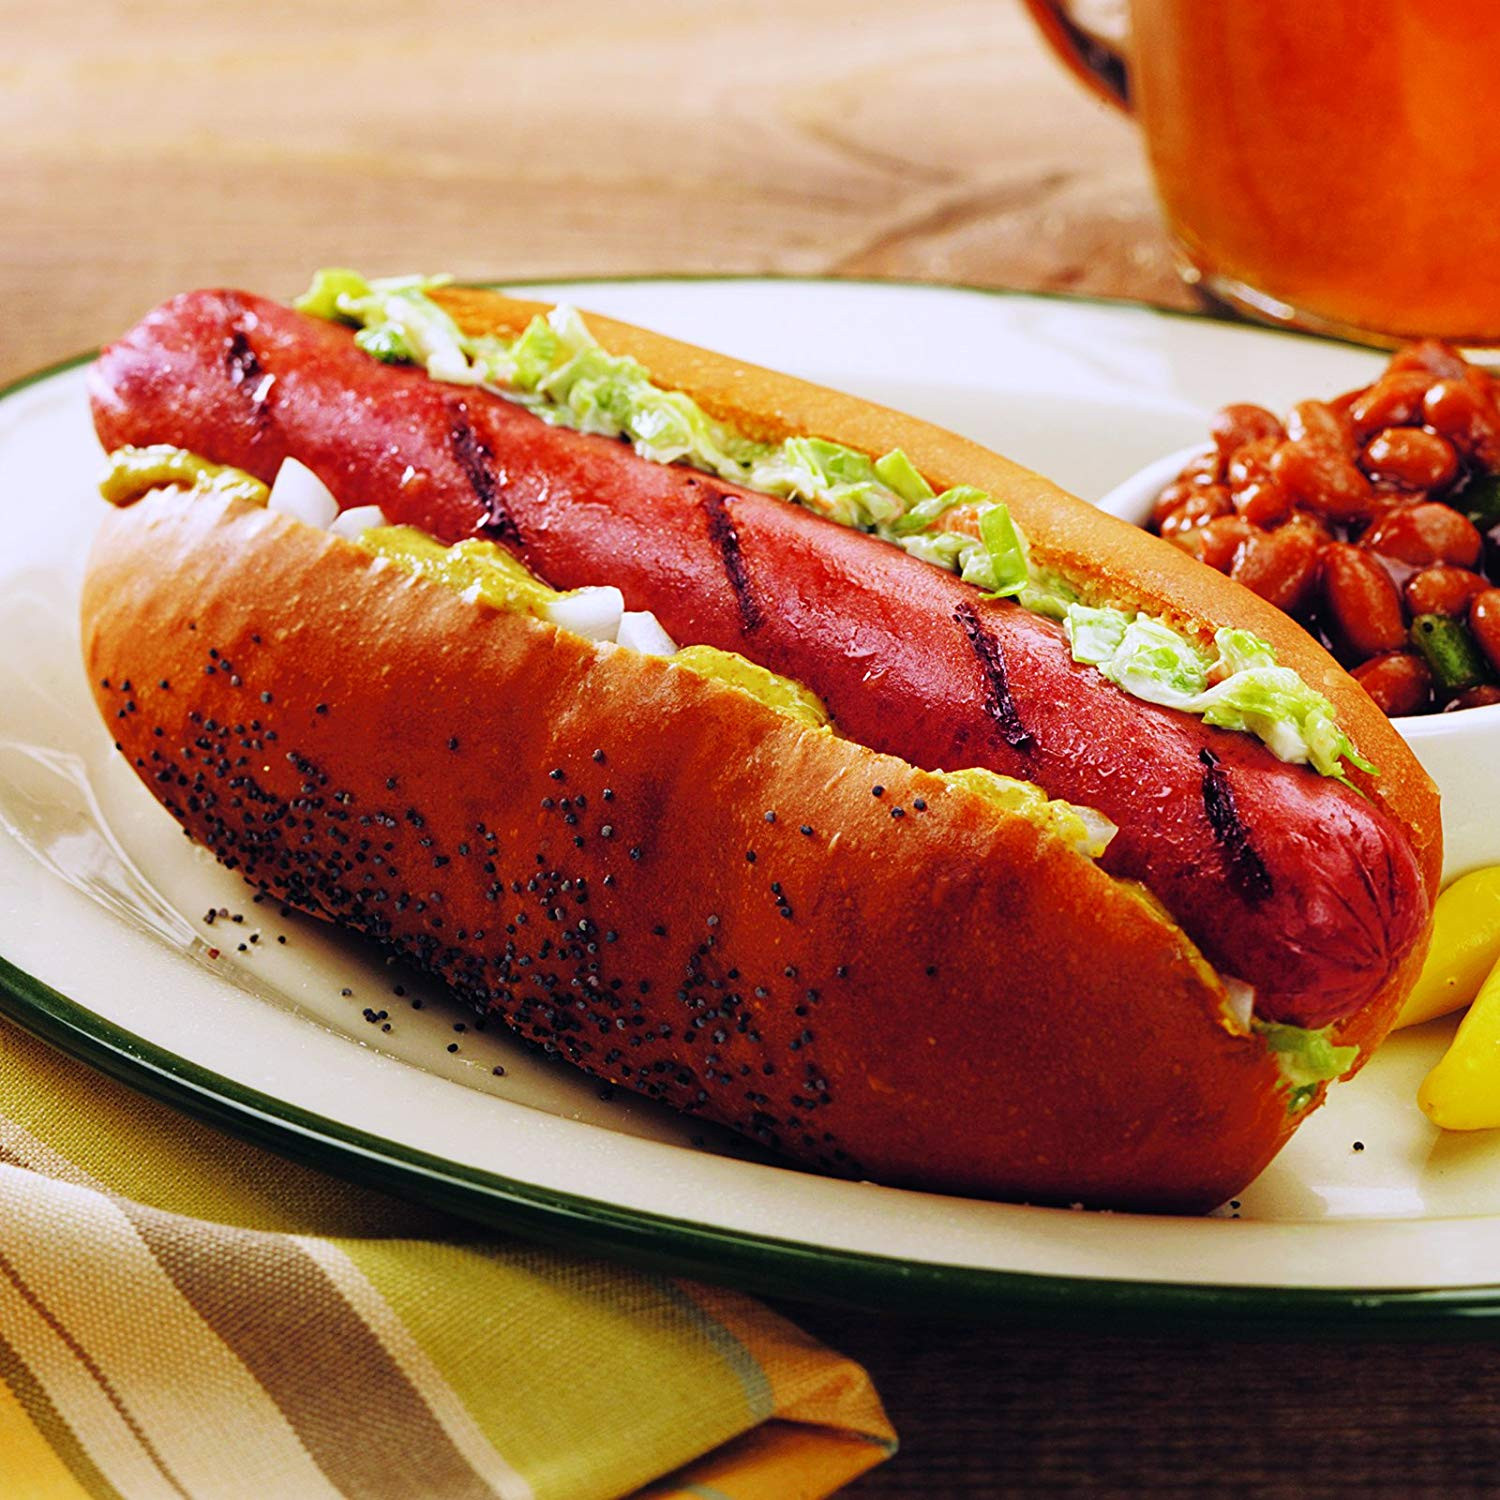 Beef Hot Dogs  OFF Kansas City Steaks 32 3 2oz All Beef Hot Dogs